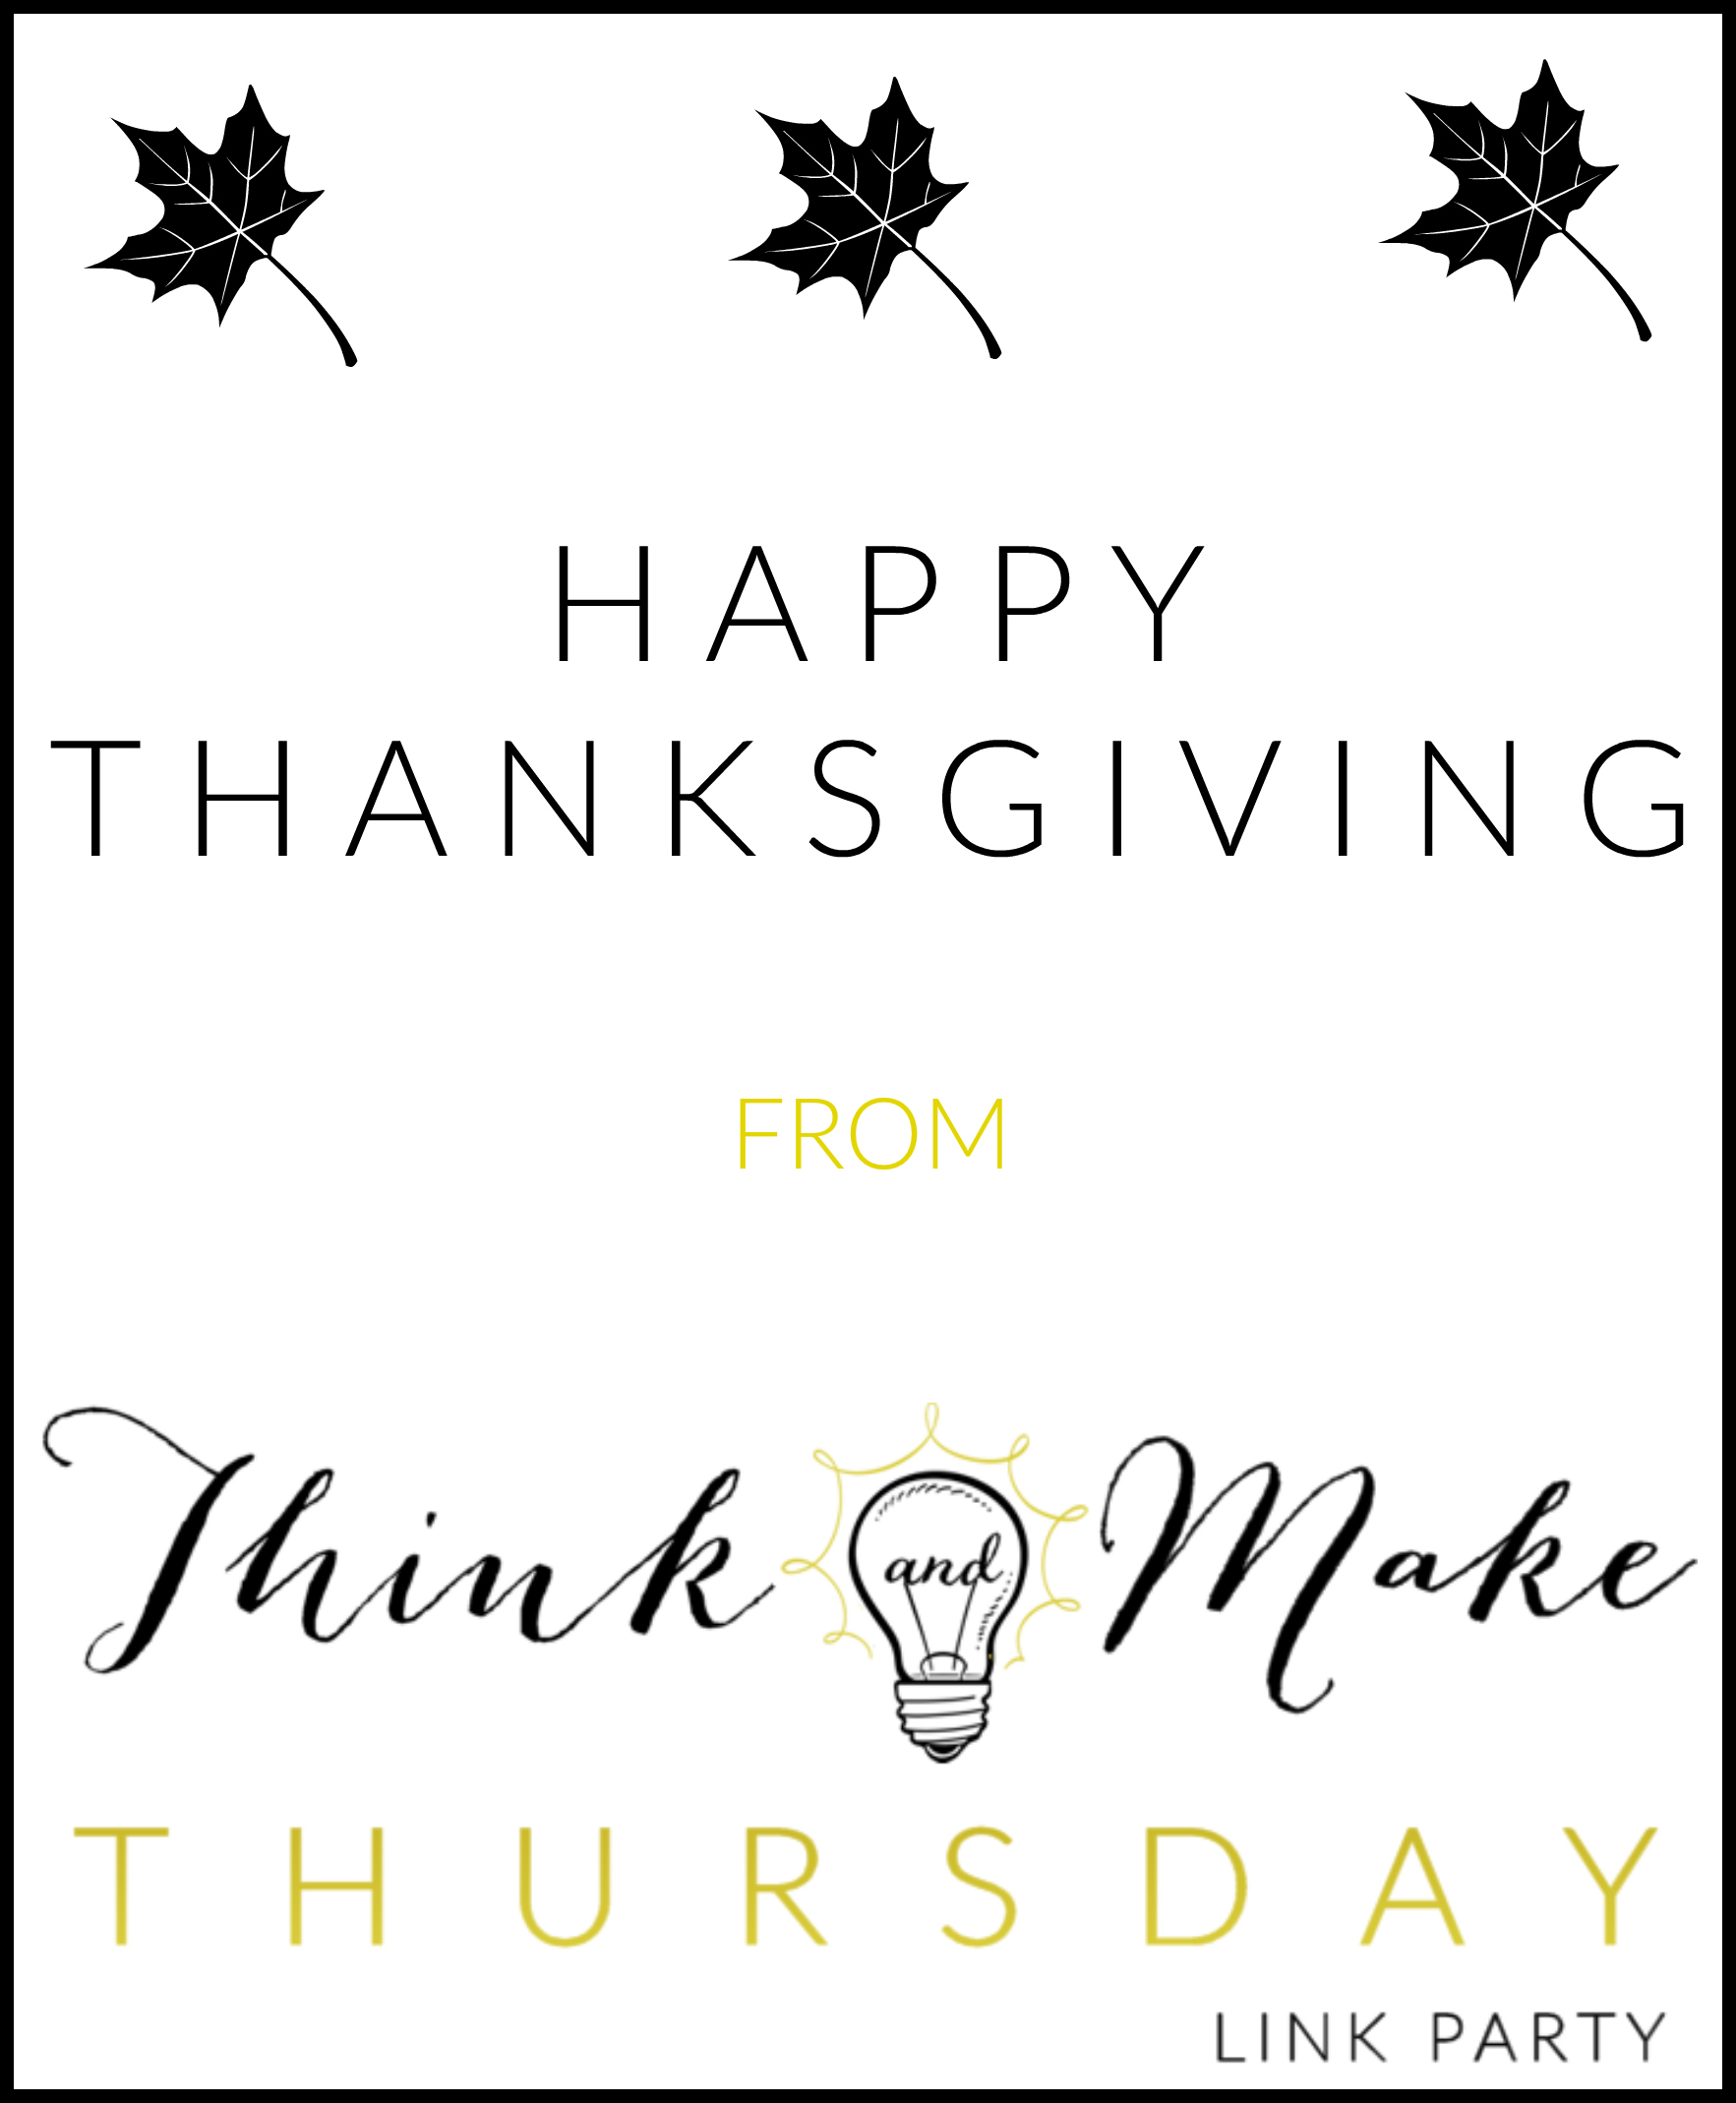 Happy Thanksgiving from Think and Make Thursday